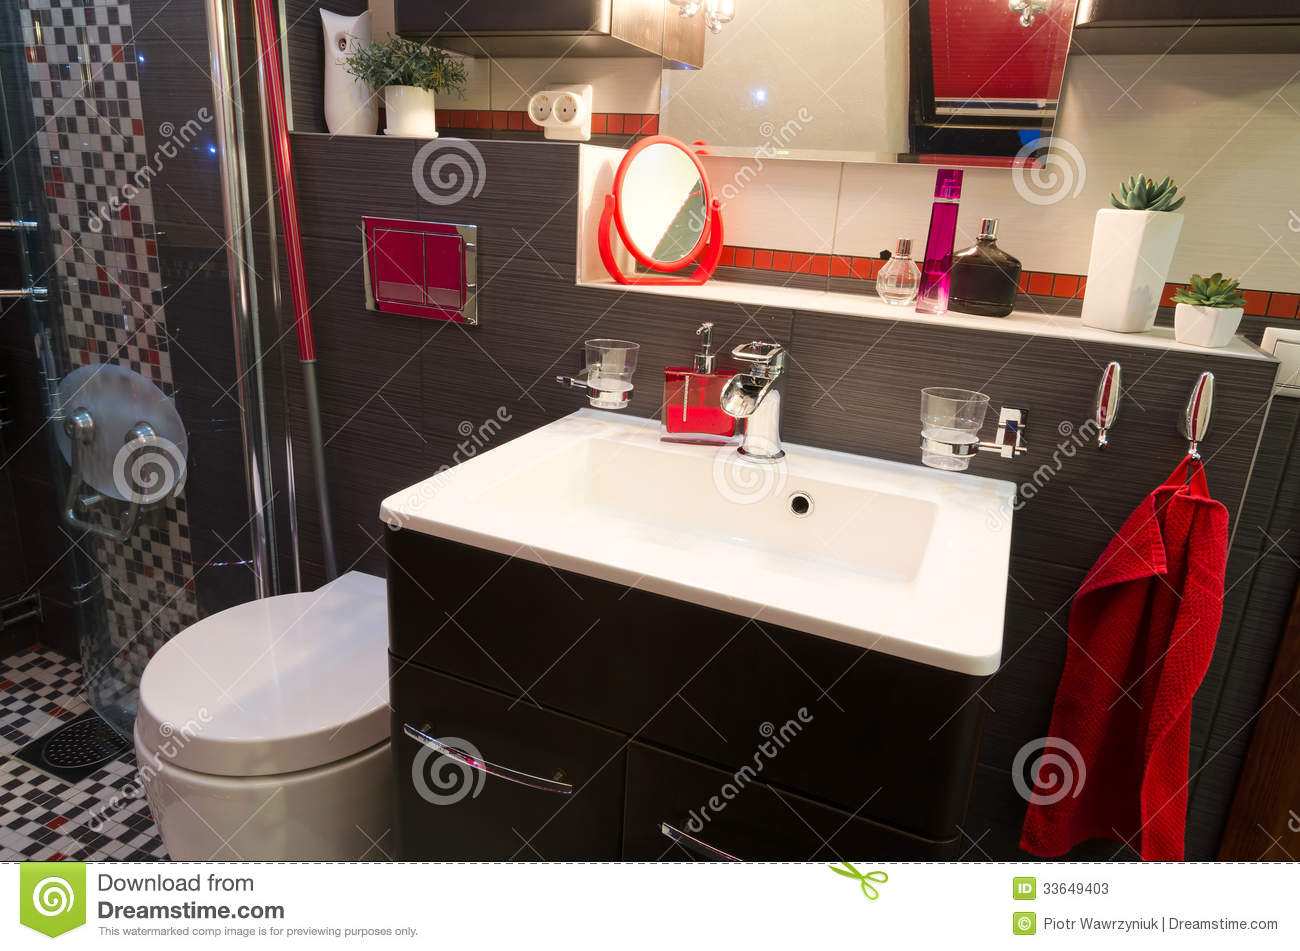 Modern Bathroom Interior With Red Accents